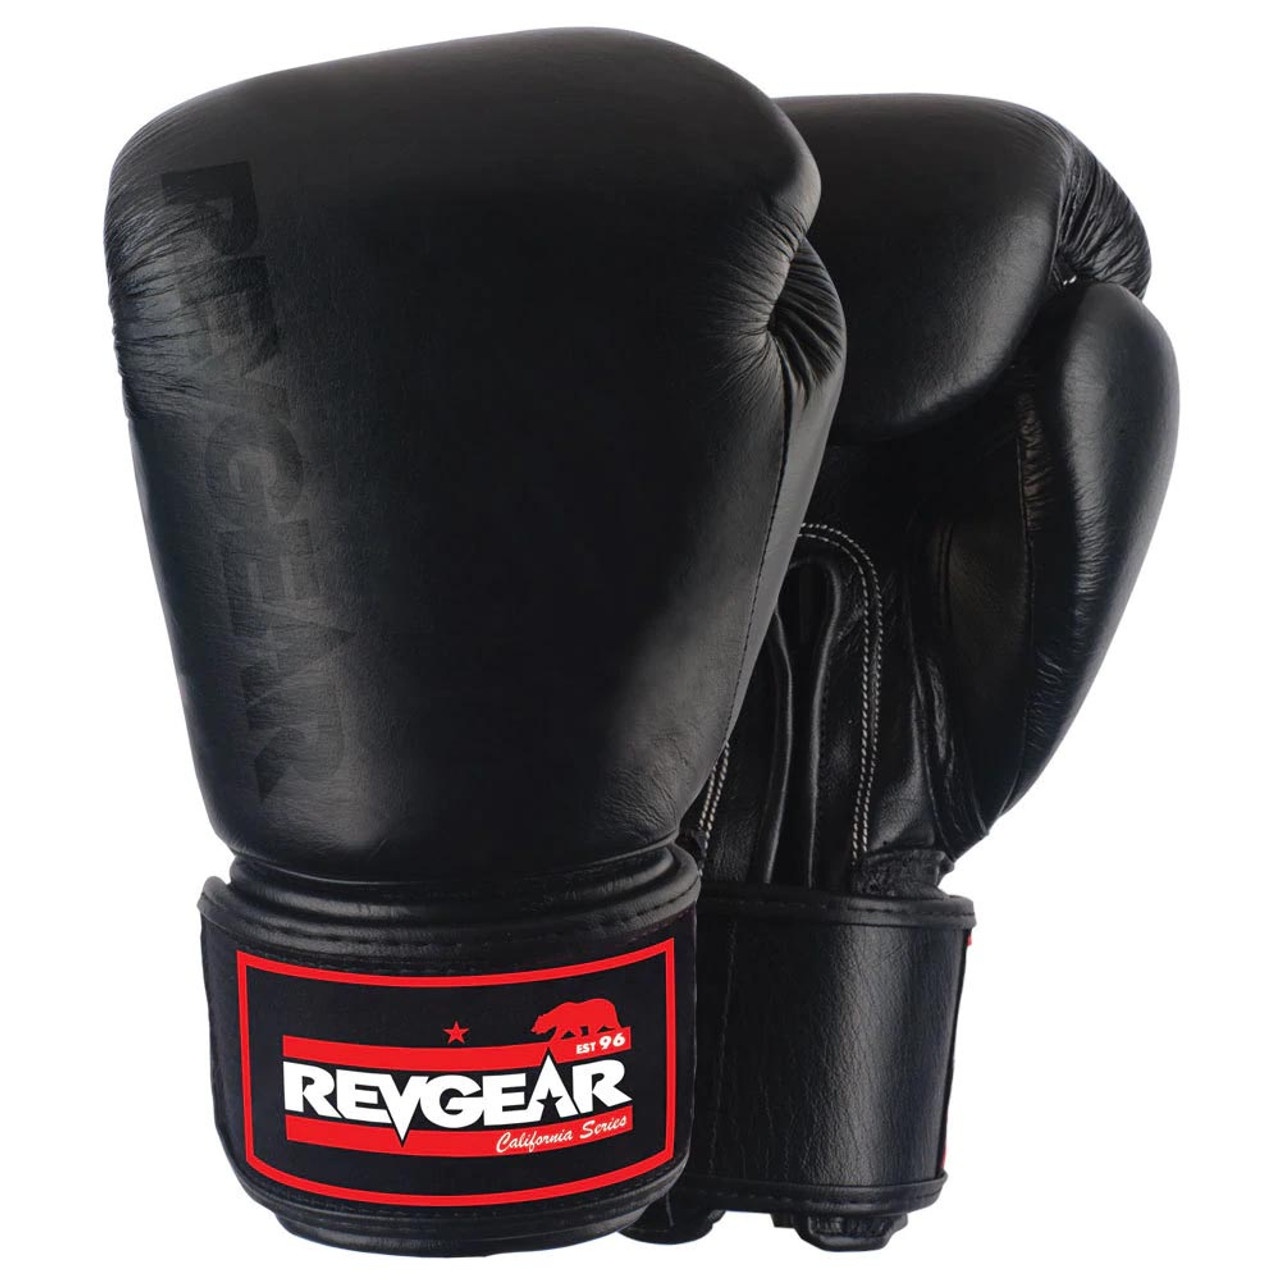 Original Leather Boxing Gloves